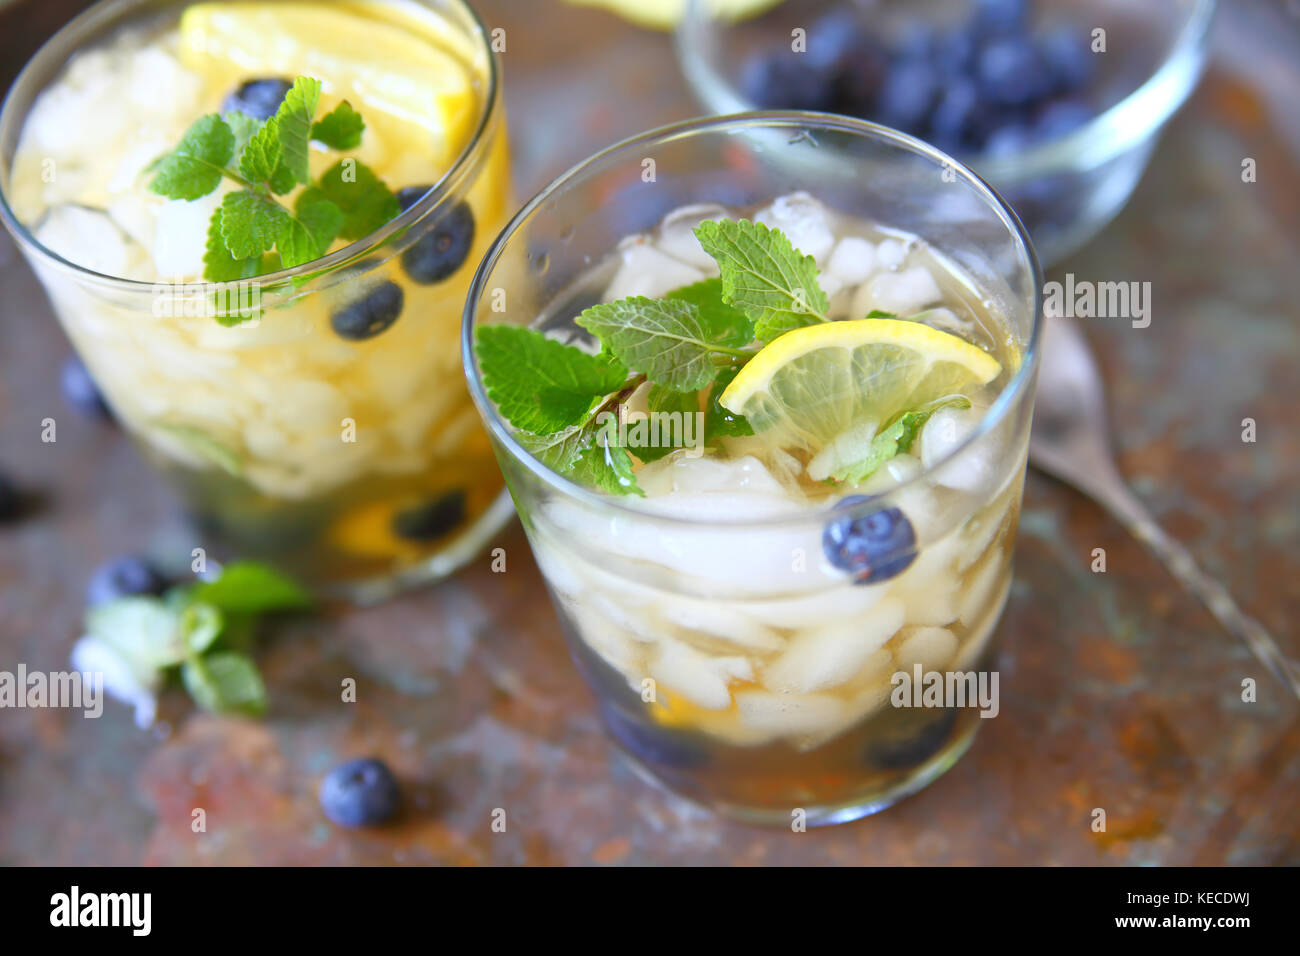 Glasses of green tea with crushed ice, lemon, blueberries and mint - Stock Image